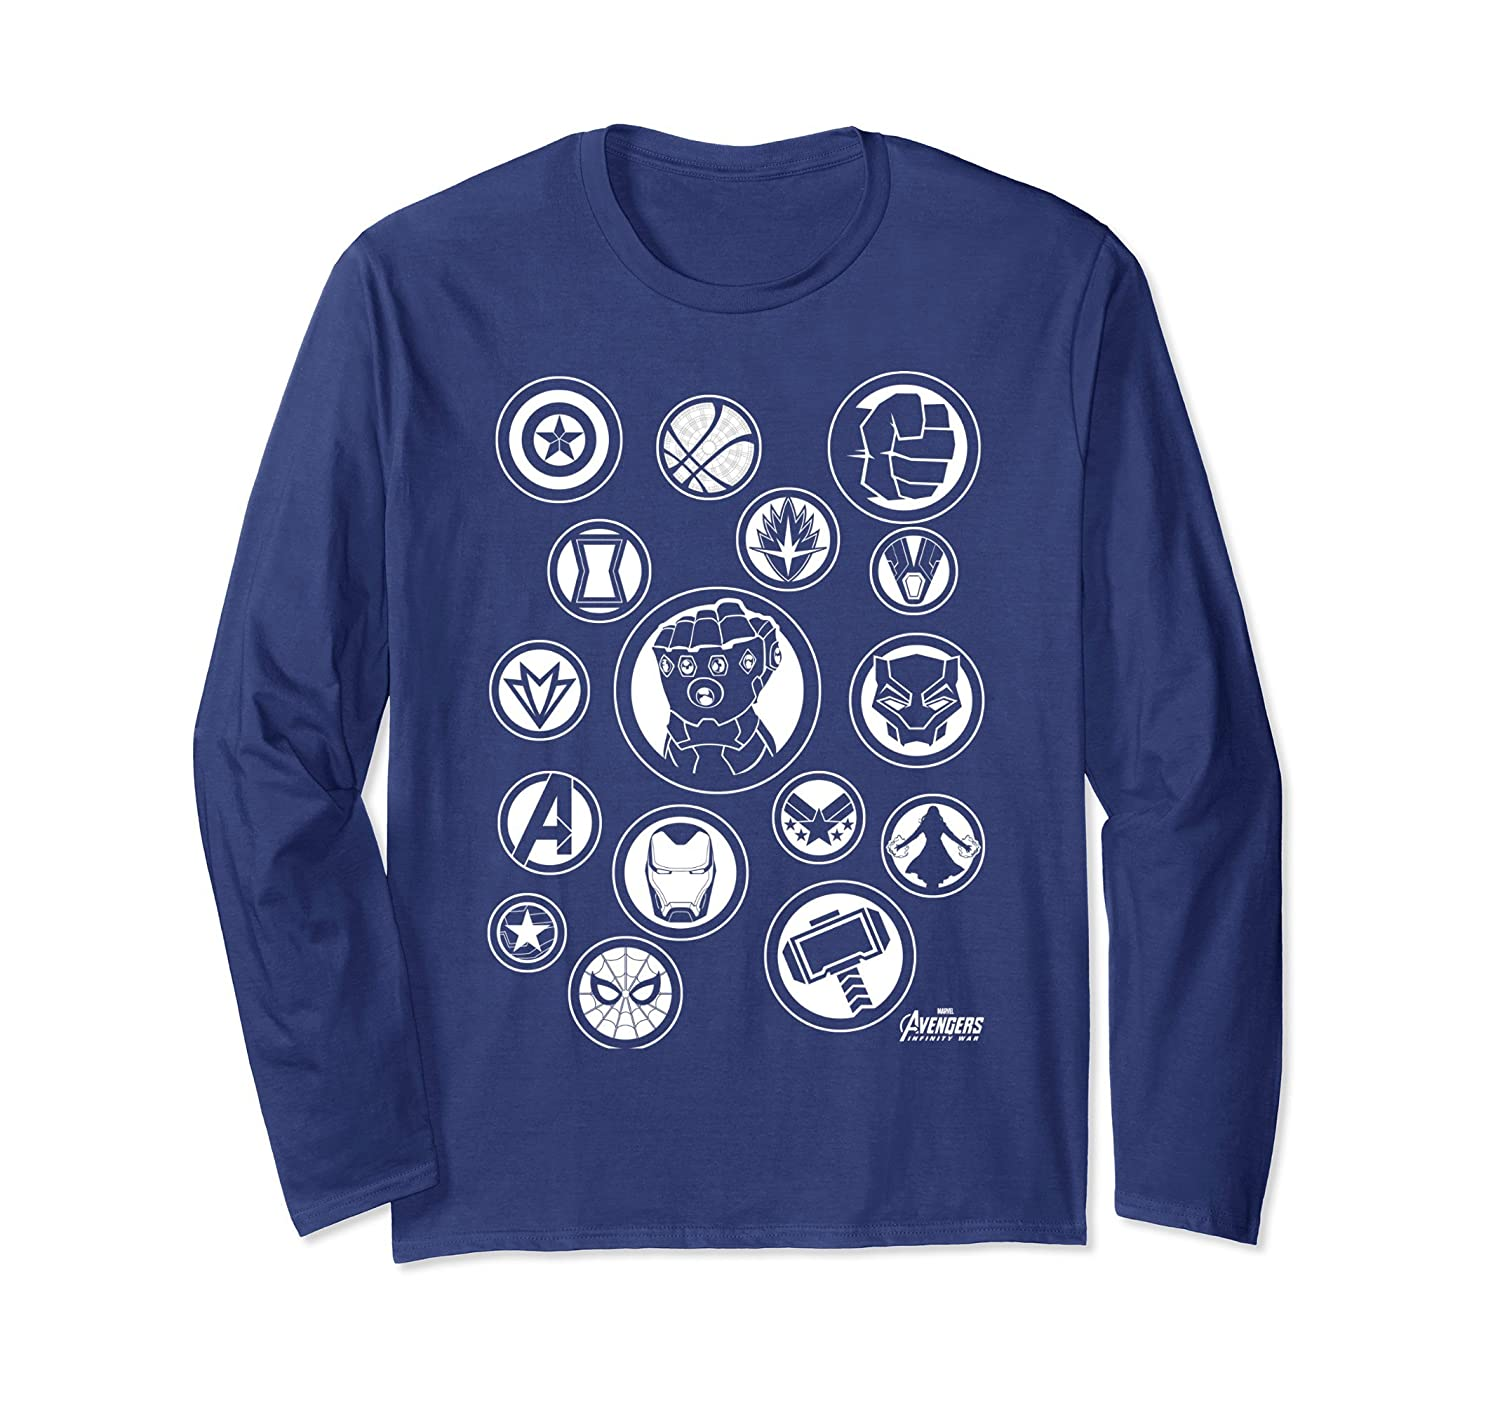 cd3bb3b2 Amazon.com: Marvel Avengers Infinity War Tonal Hero Icon Long Sleeve Tee:  Clothing